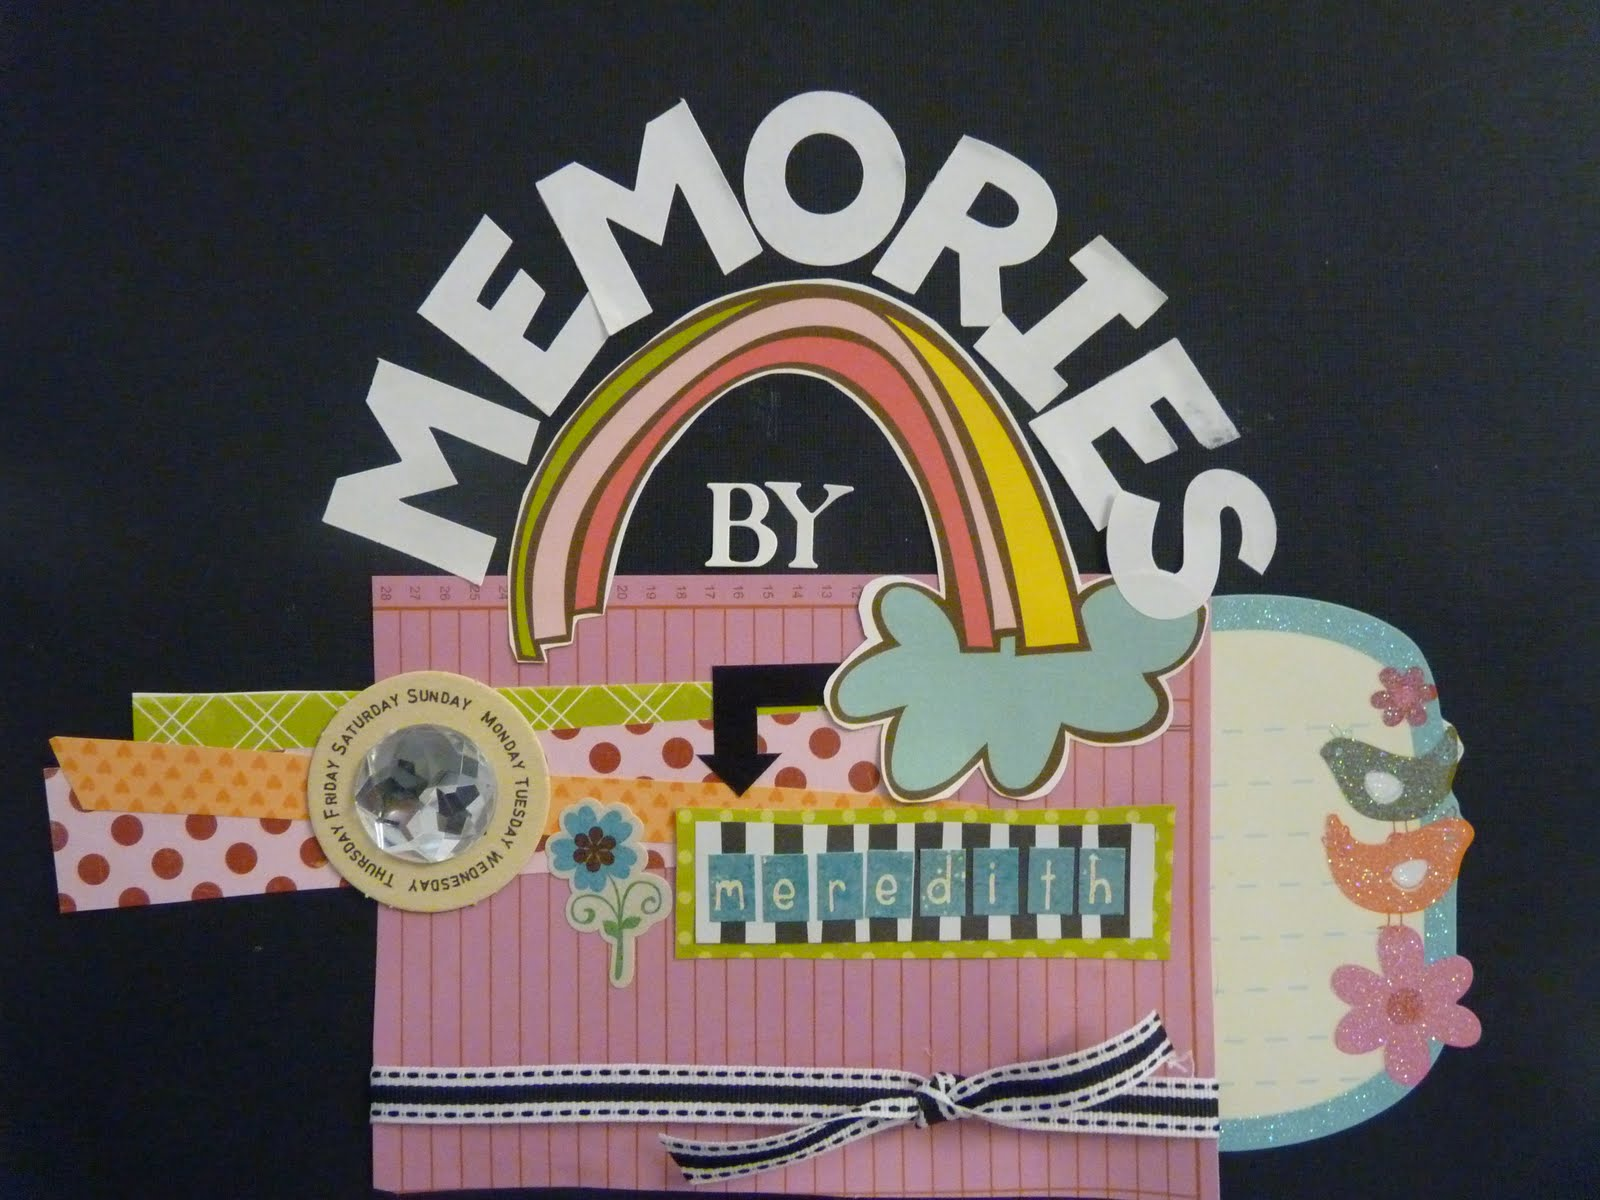 Memories By Meredith